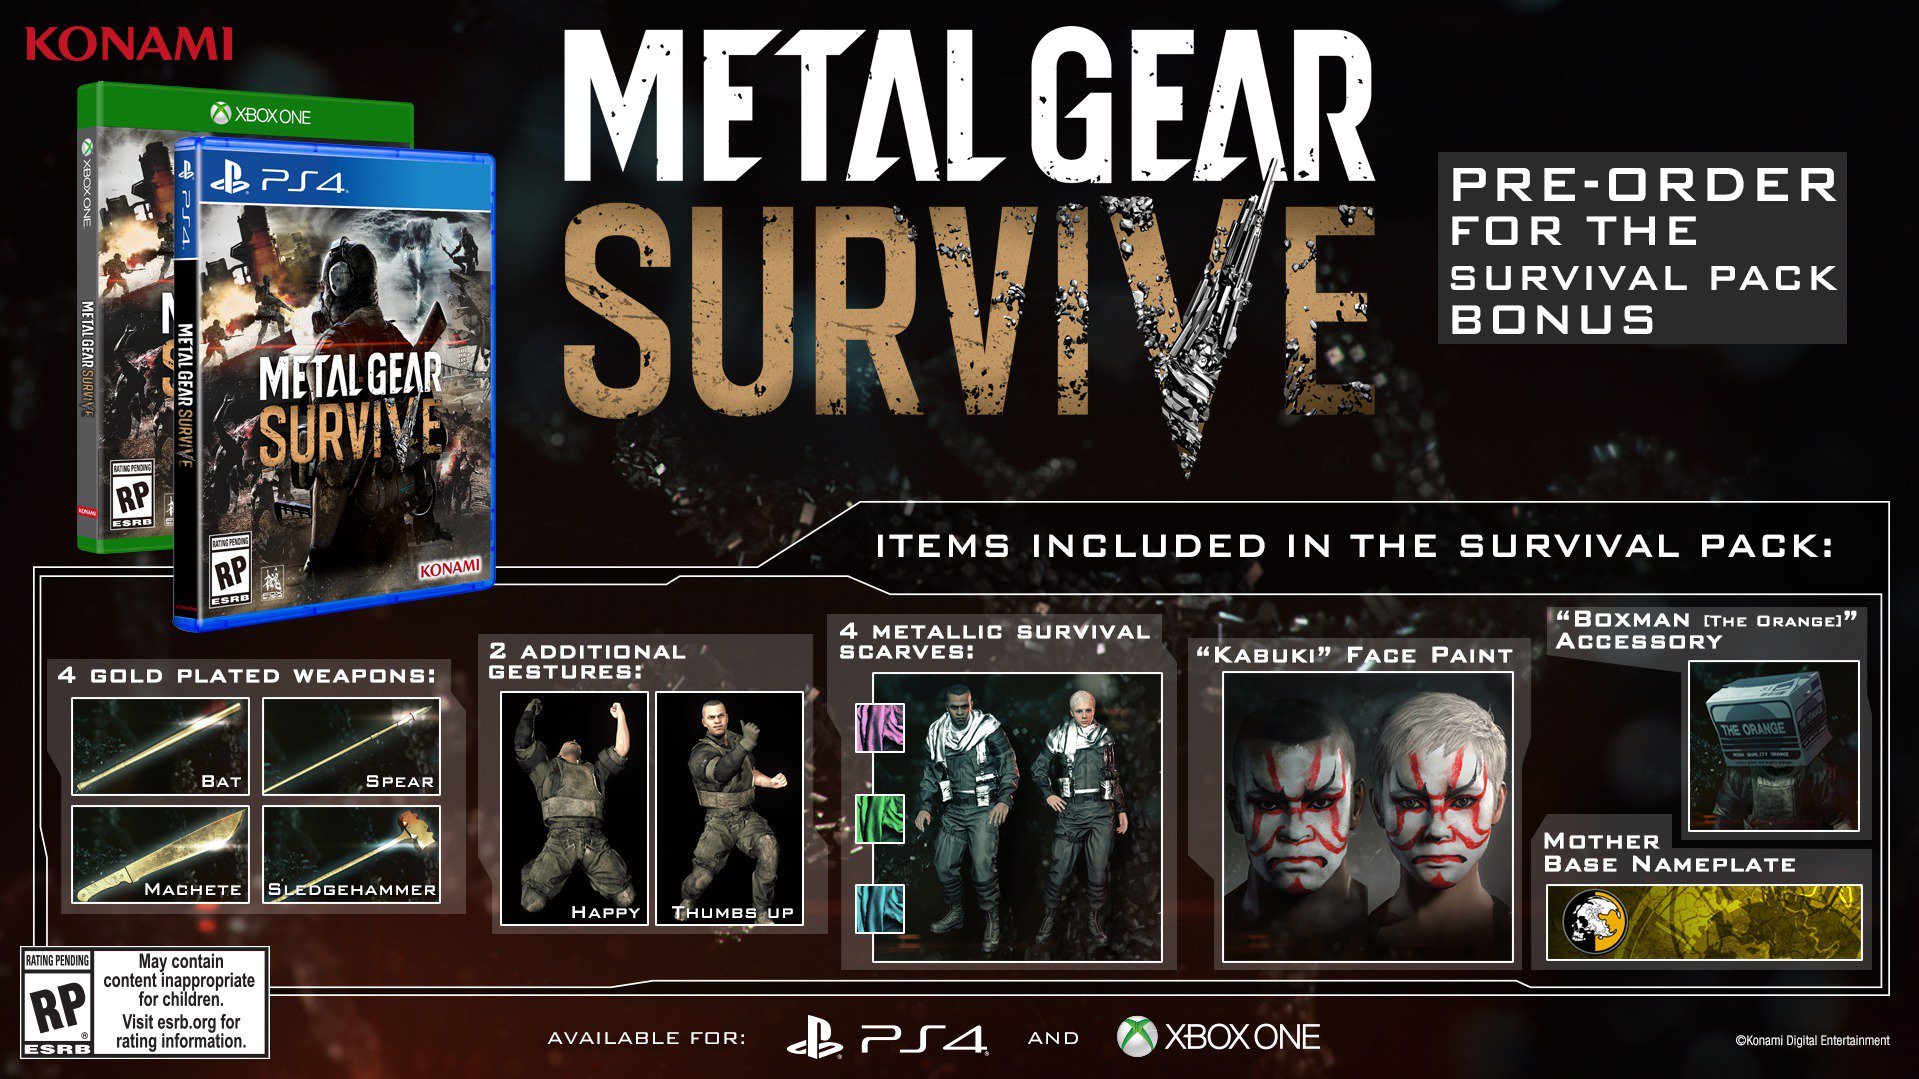 Metal Gear Survive Survival Pack